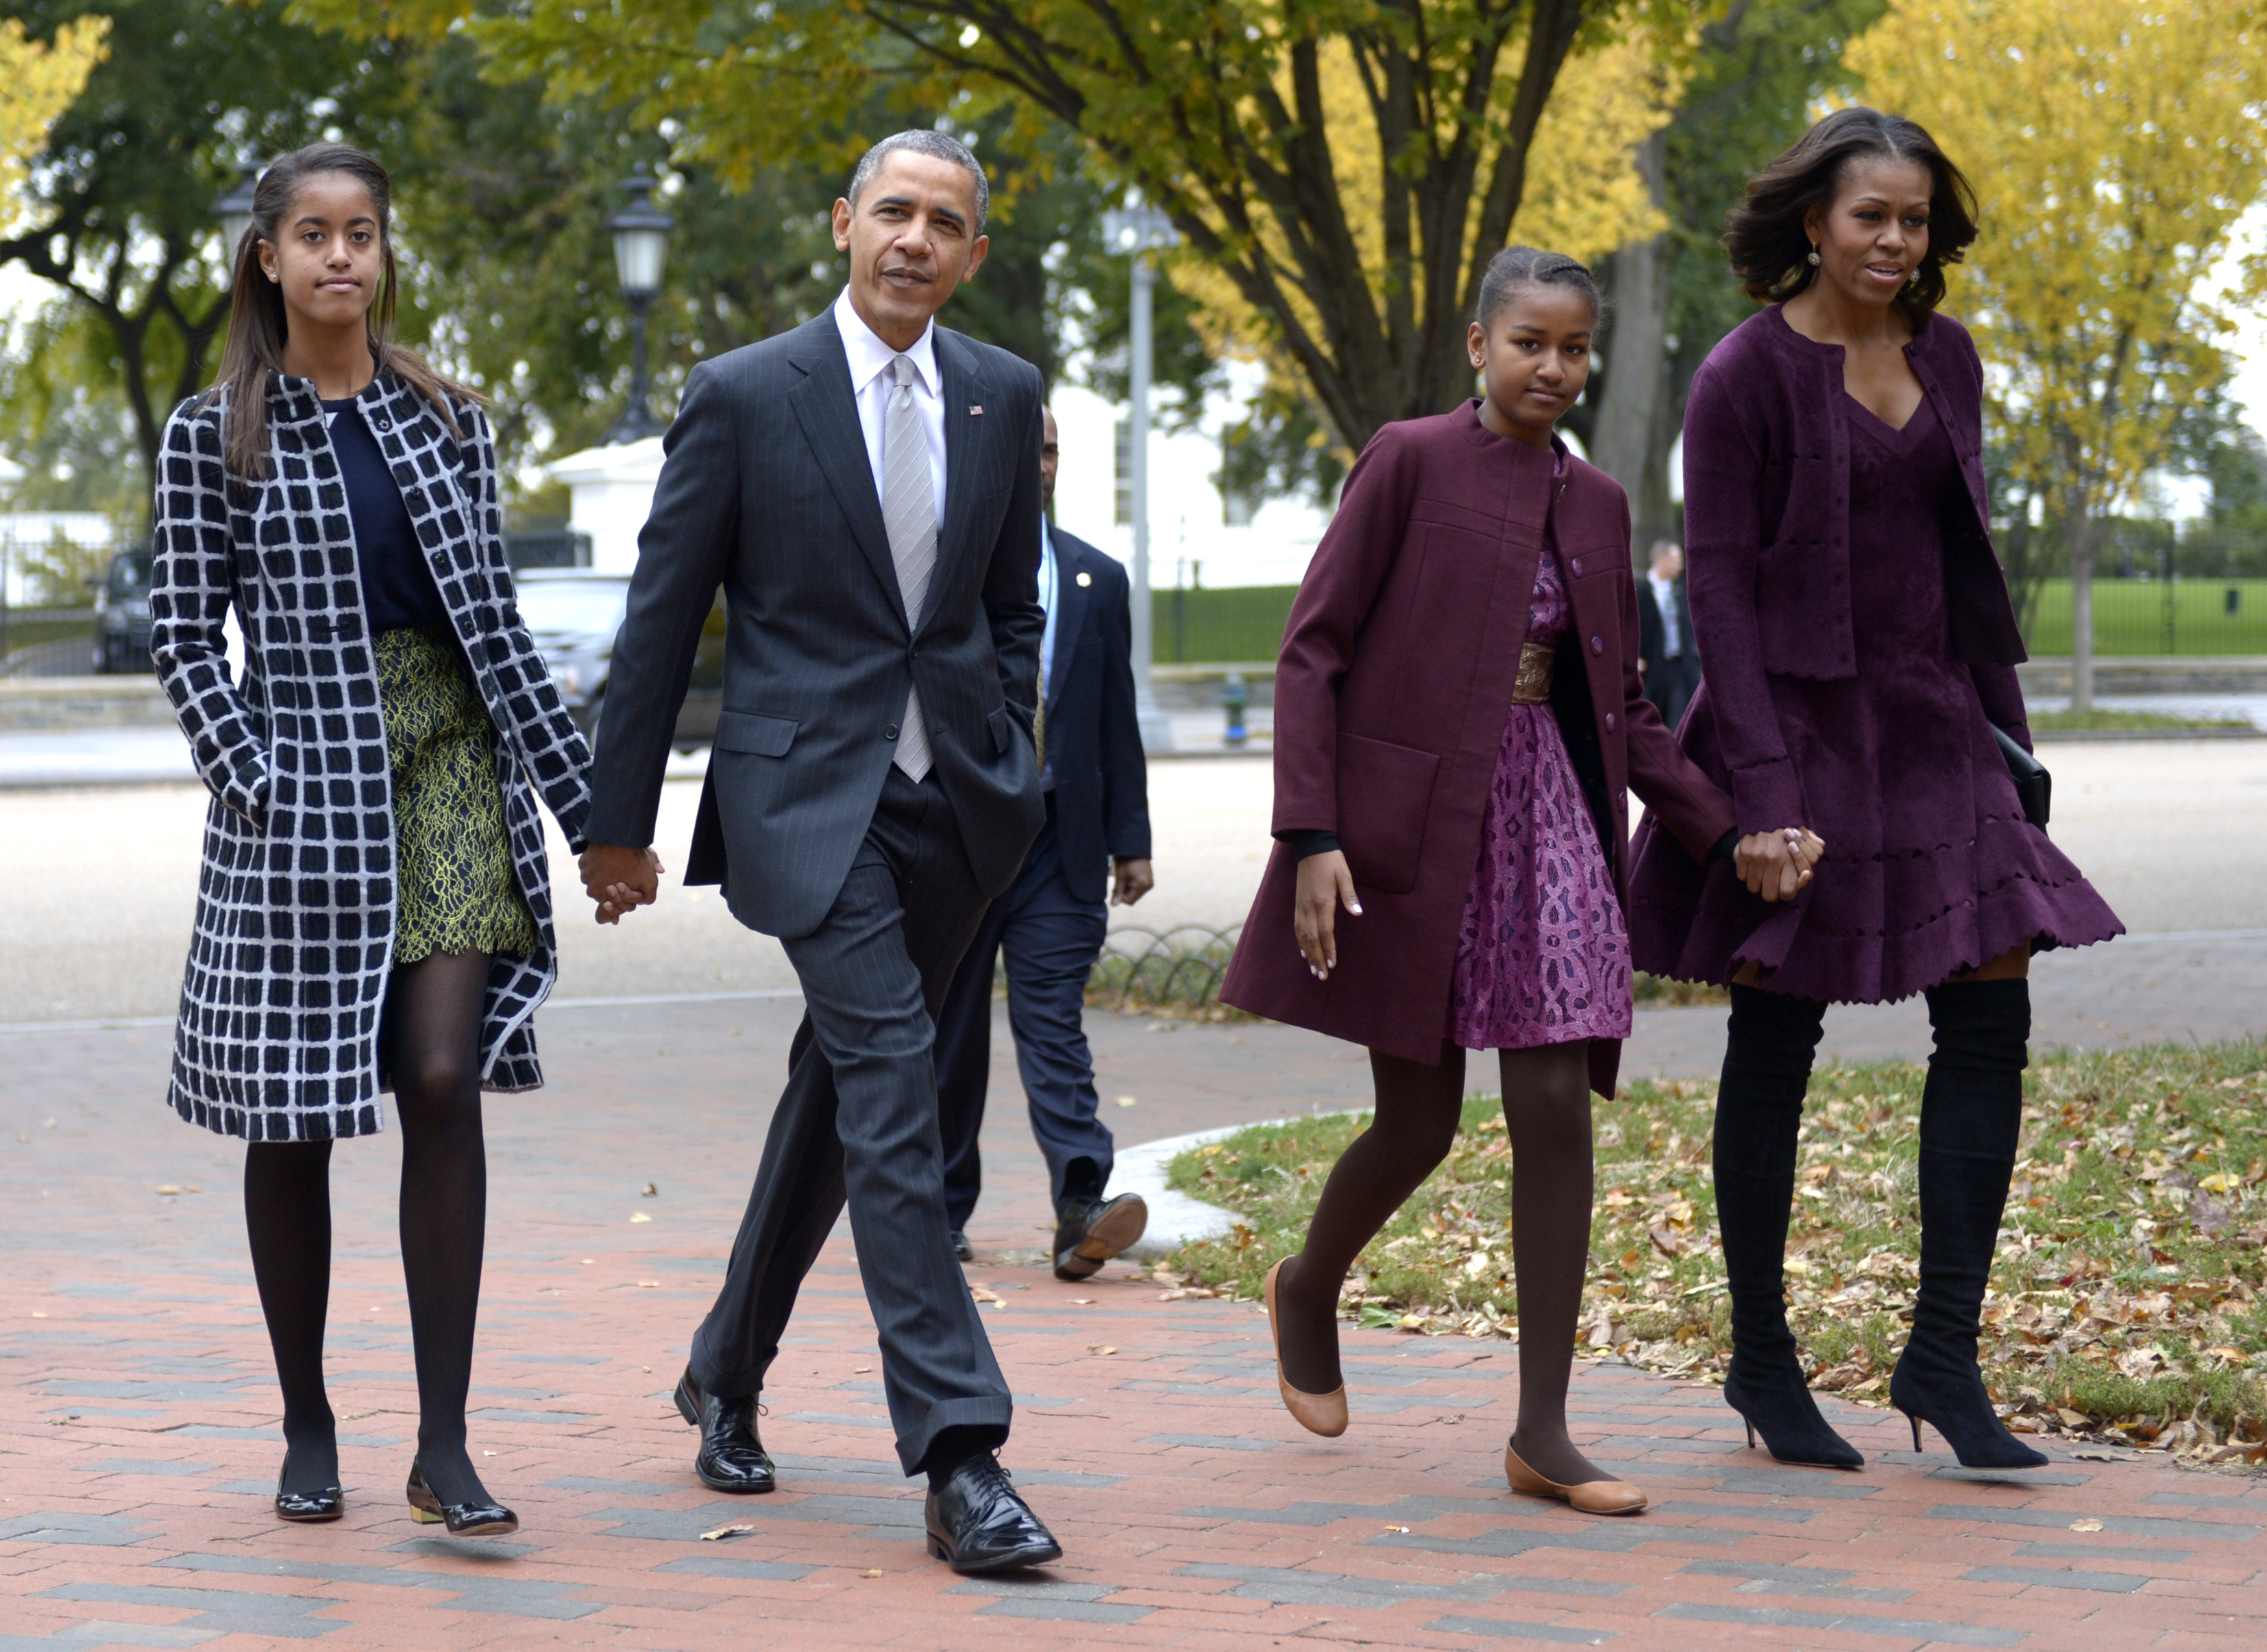 President Barack Obama walks with his wife Michelle Obama (R) and two daughters Malia Obama (L) and Sasha Obama (2R) through Lafayette Park to St John's Church to attend service October 27, 2013 in Washington, DC. Photo by Shawn Thew-Pool/Getty Images